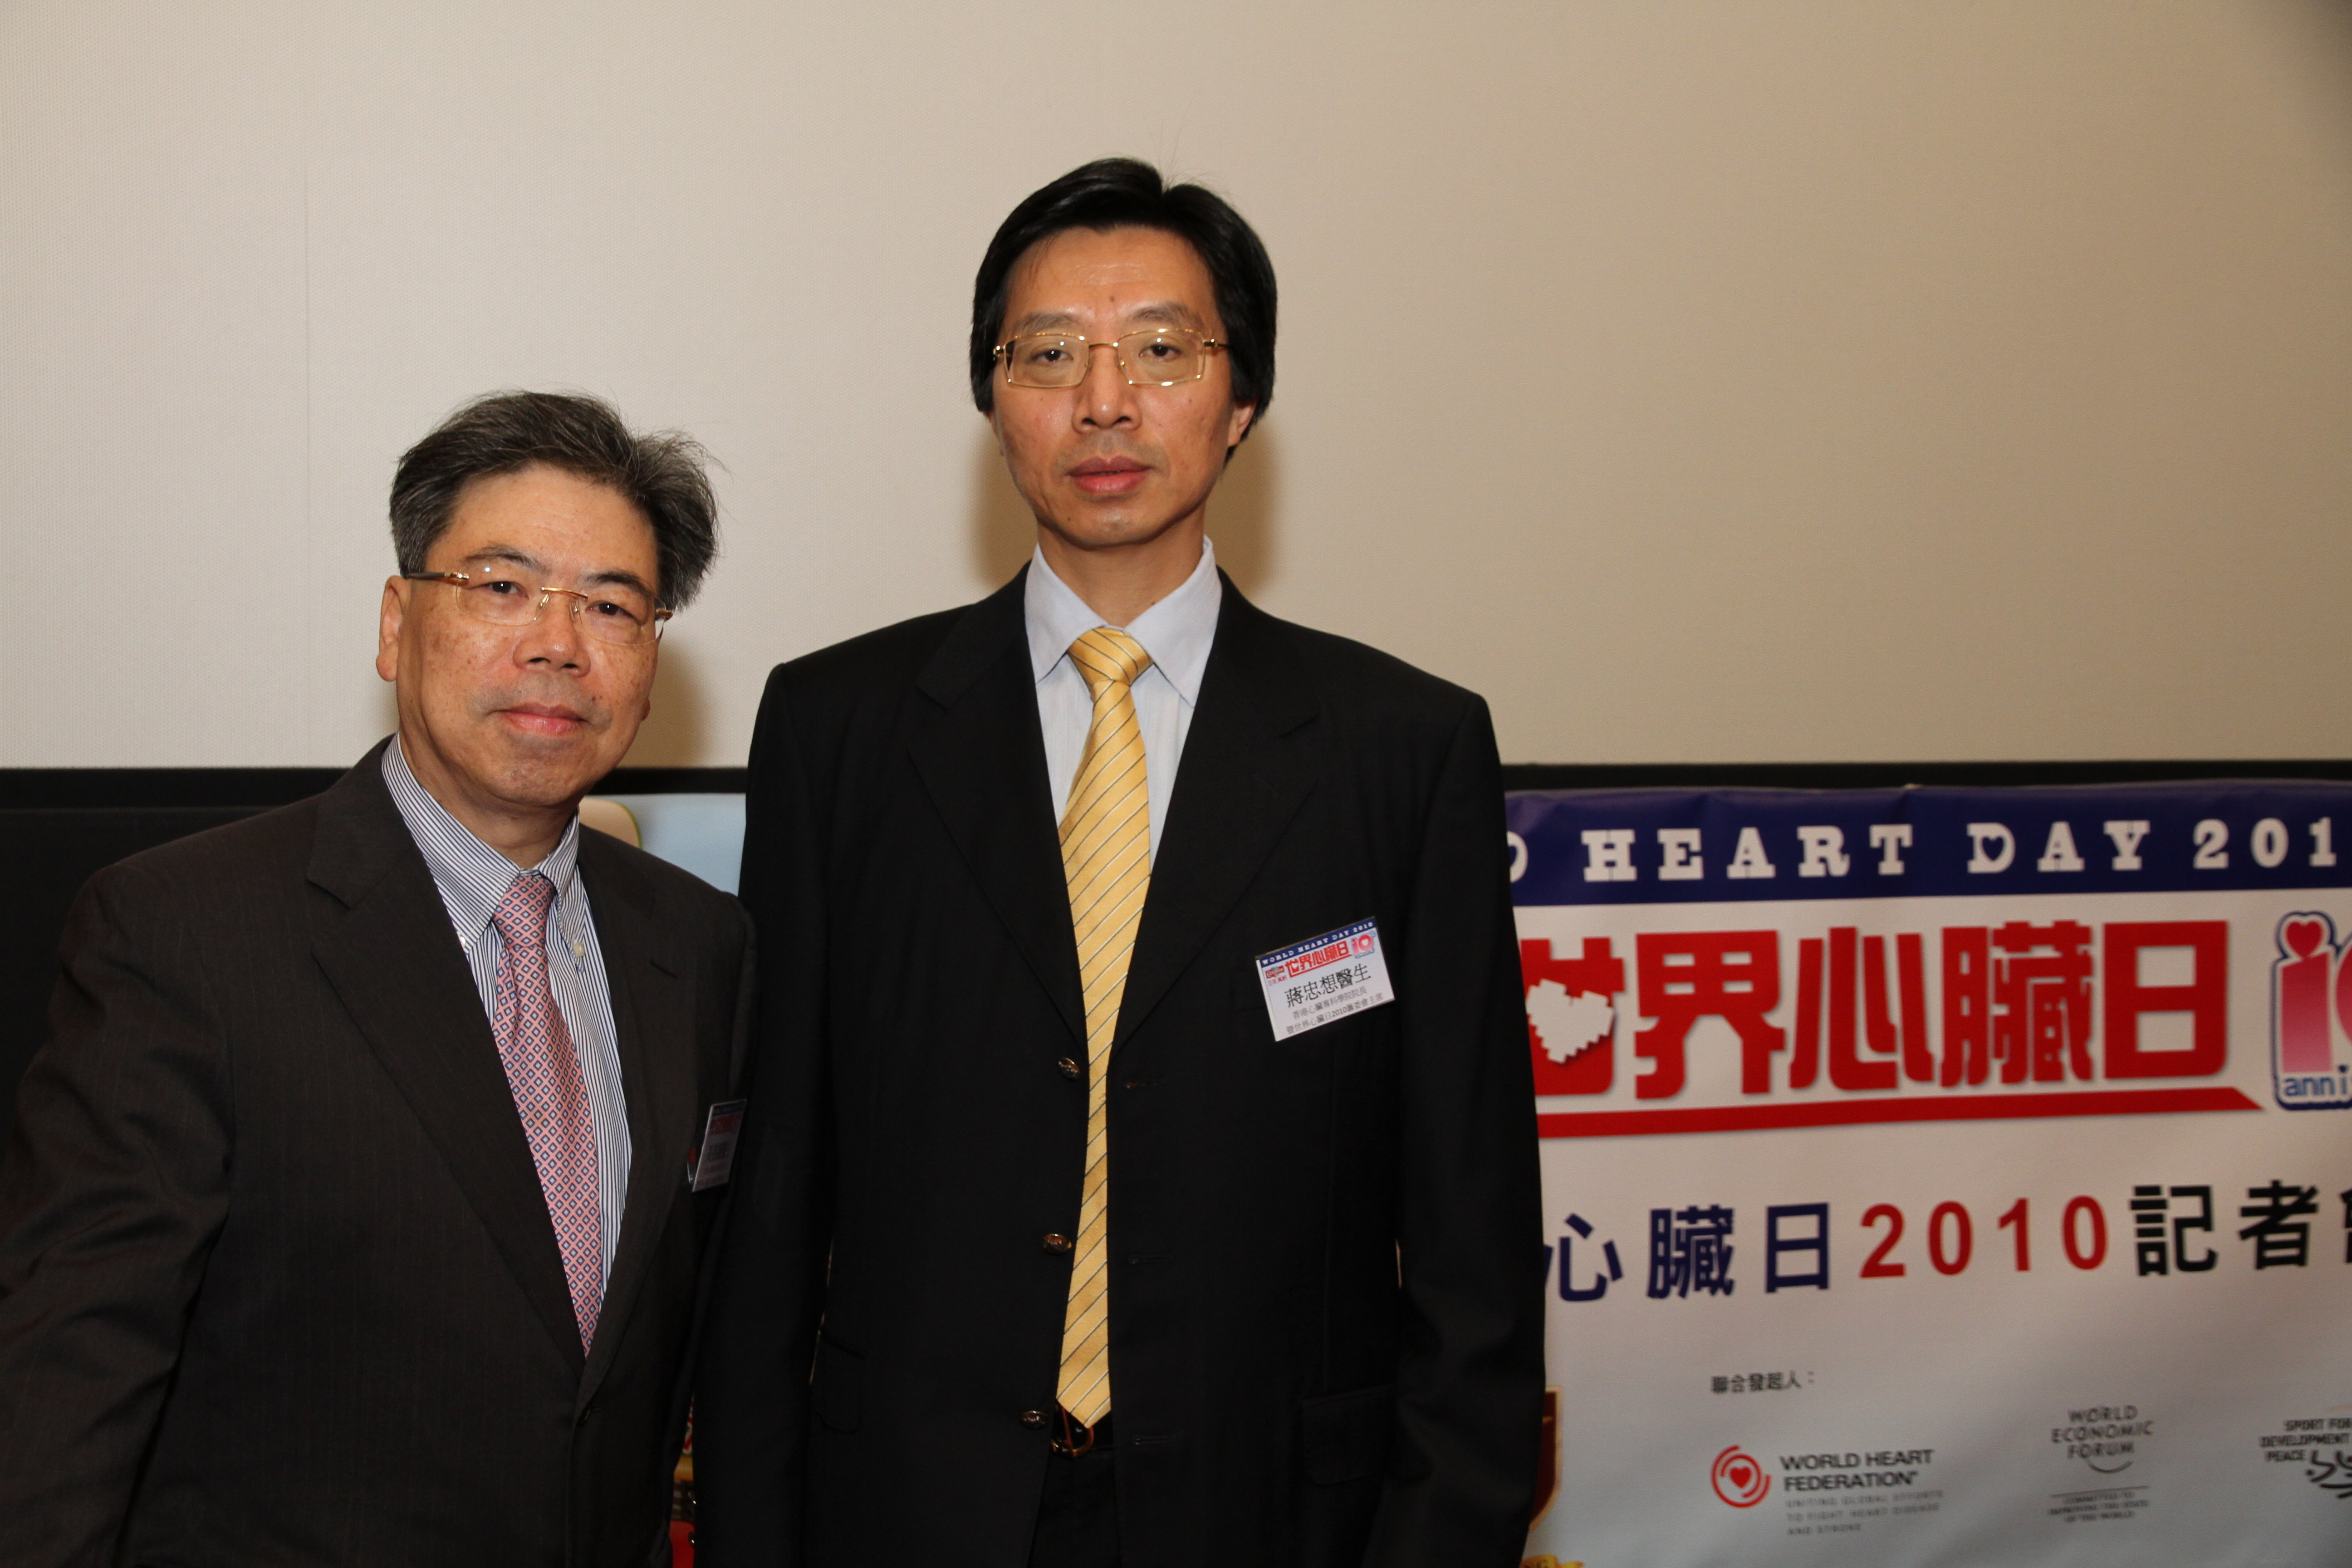 20100912World Heart Day 2010 - Press Conference